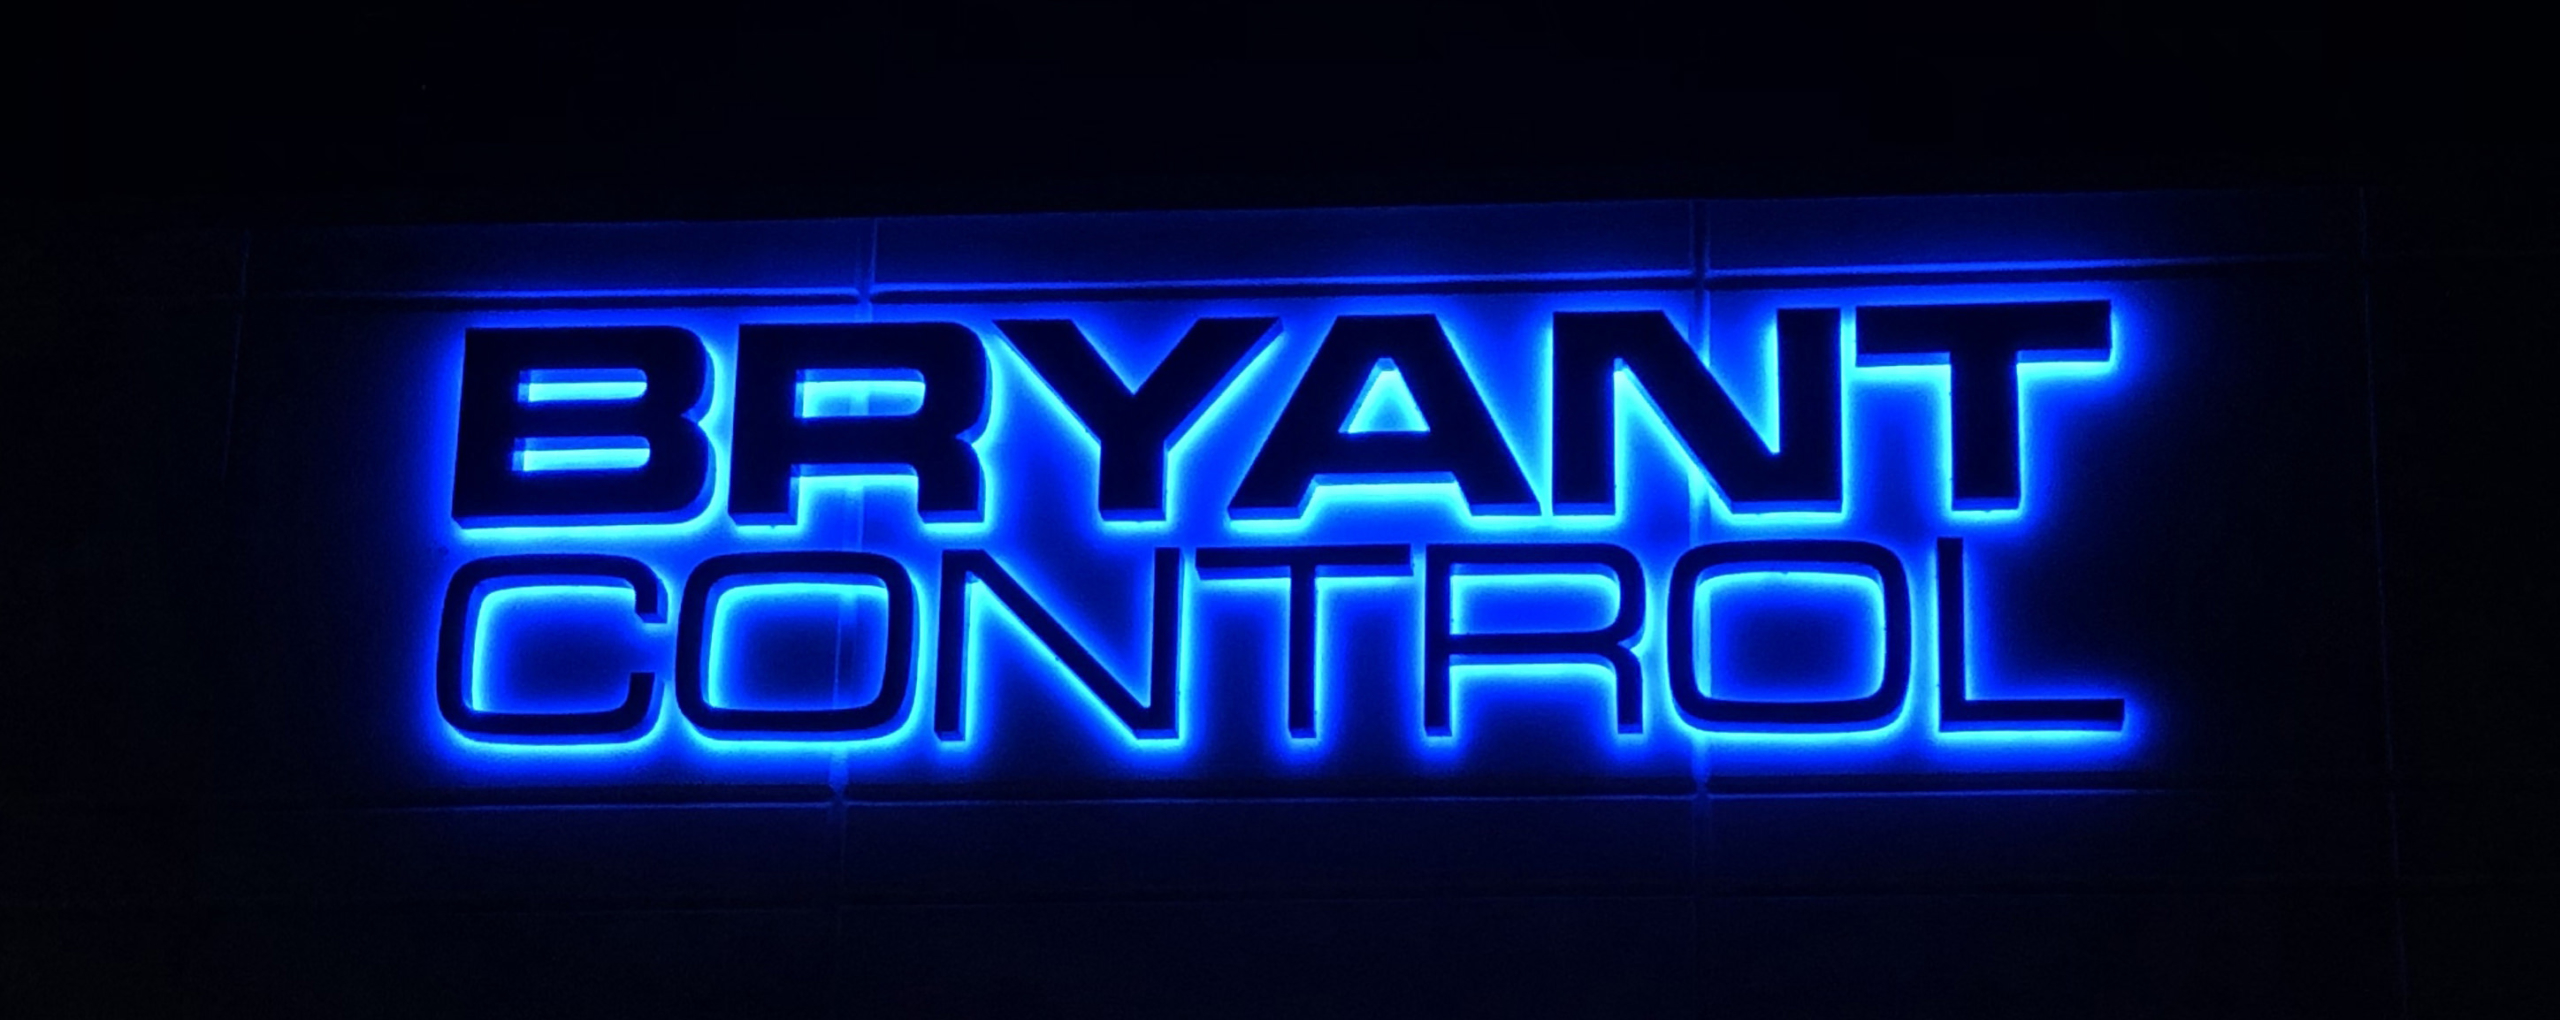 Channel Letter Sign Bryant Control